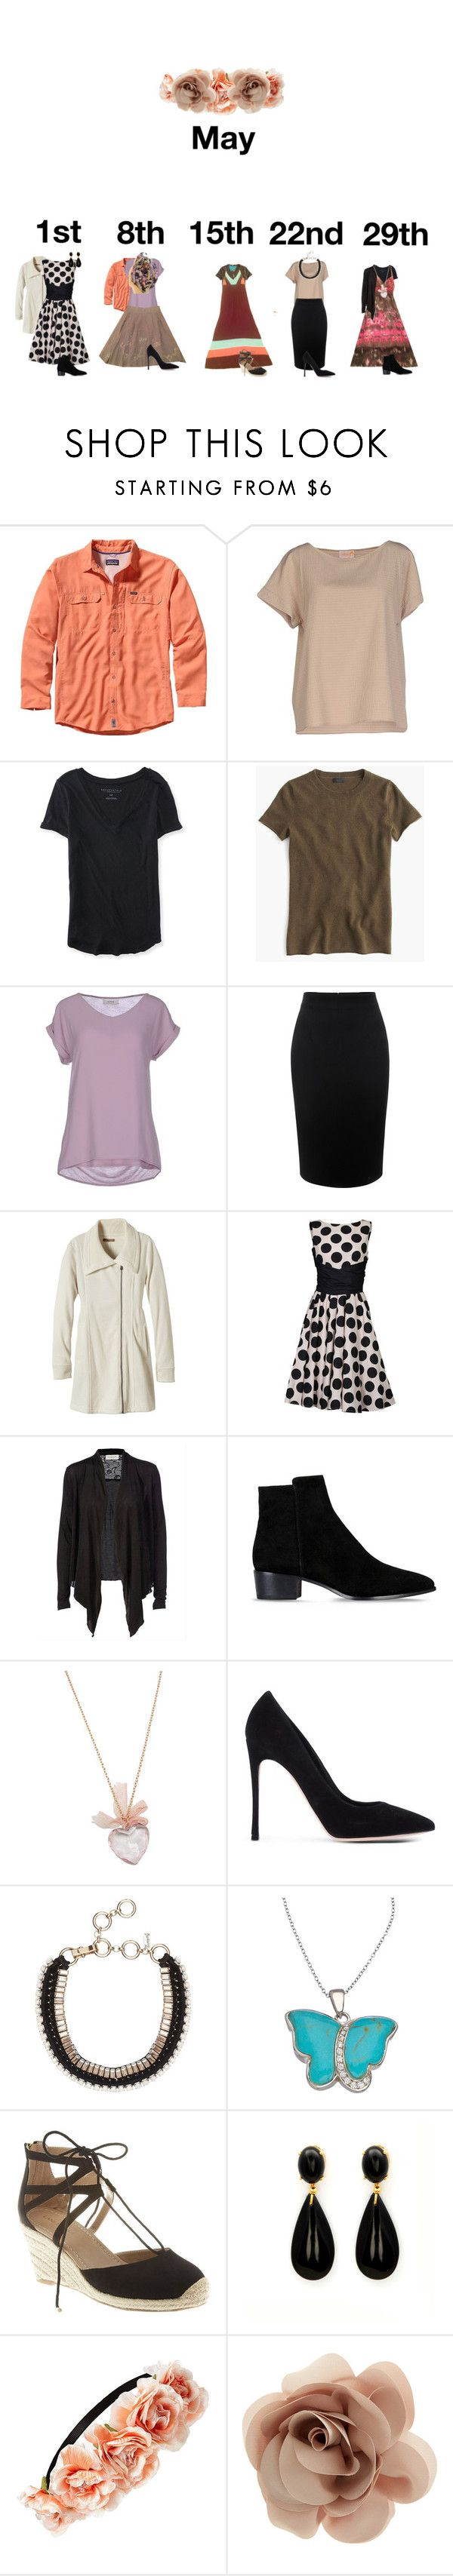 """Church in May"" by rachelellen21 ❤ liked on Polyvore featuring Patagonia, Dolores Promesas, Aéropostale, J.Crew, Alpha Studio, Alexander McQueen, prAna, Jolie Moi, Rosemunde and Barbara Bui"